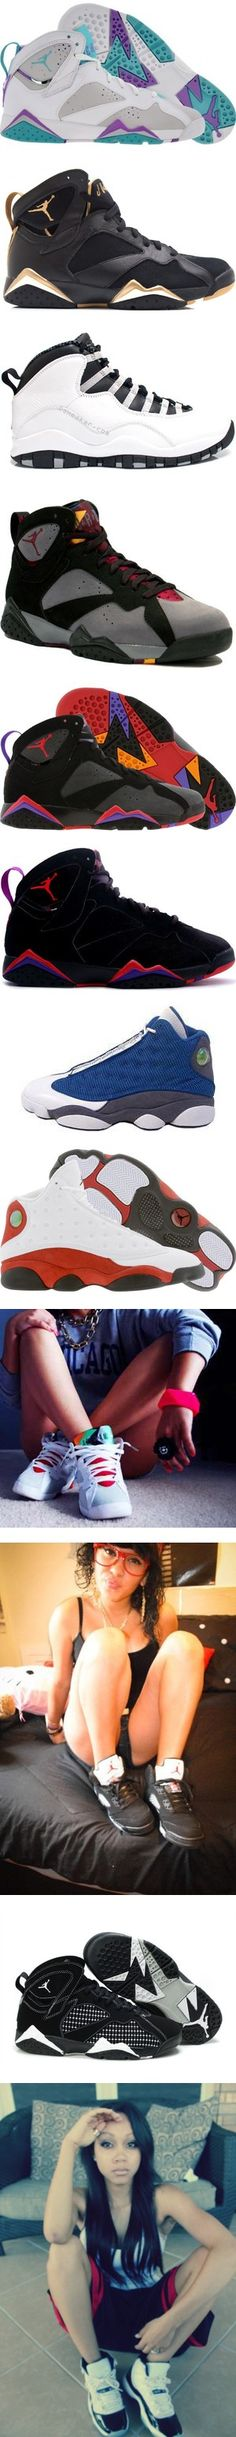 """Jordans *.*"" by crissy-swaq ❤ liked on Polyvore"